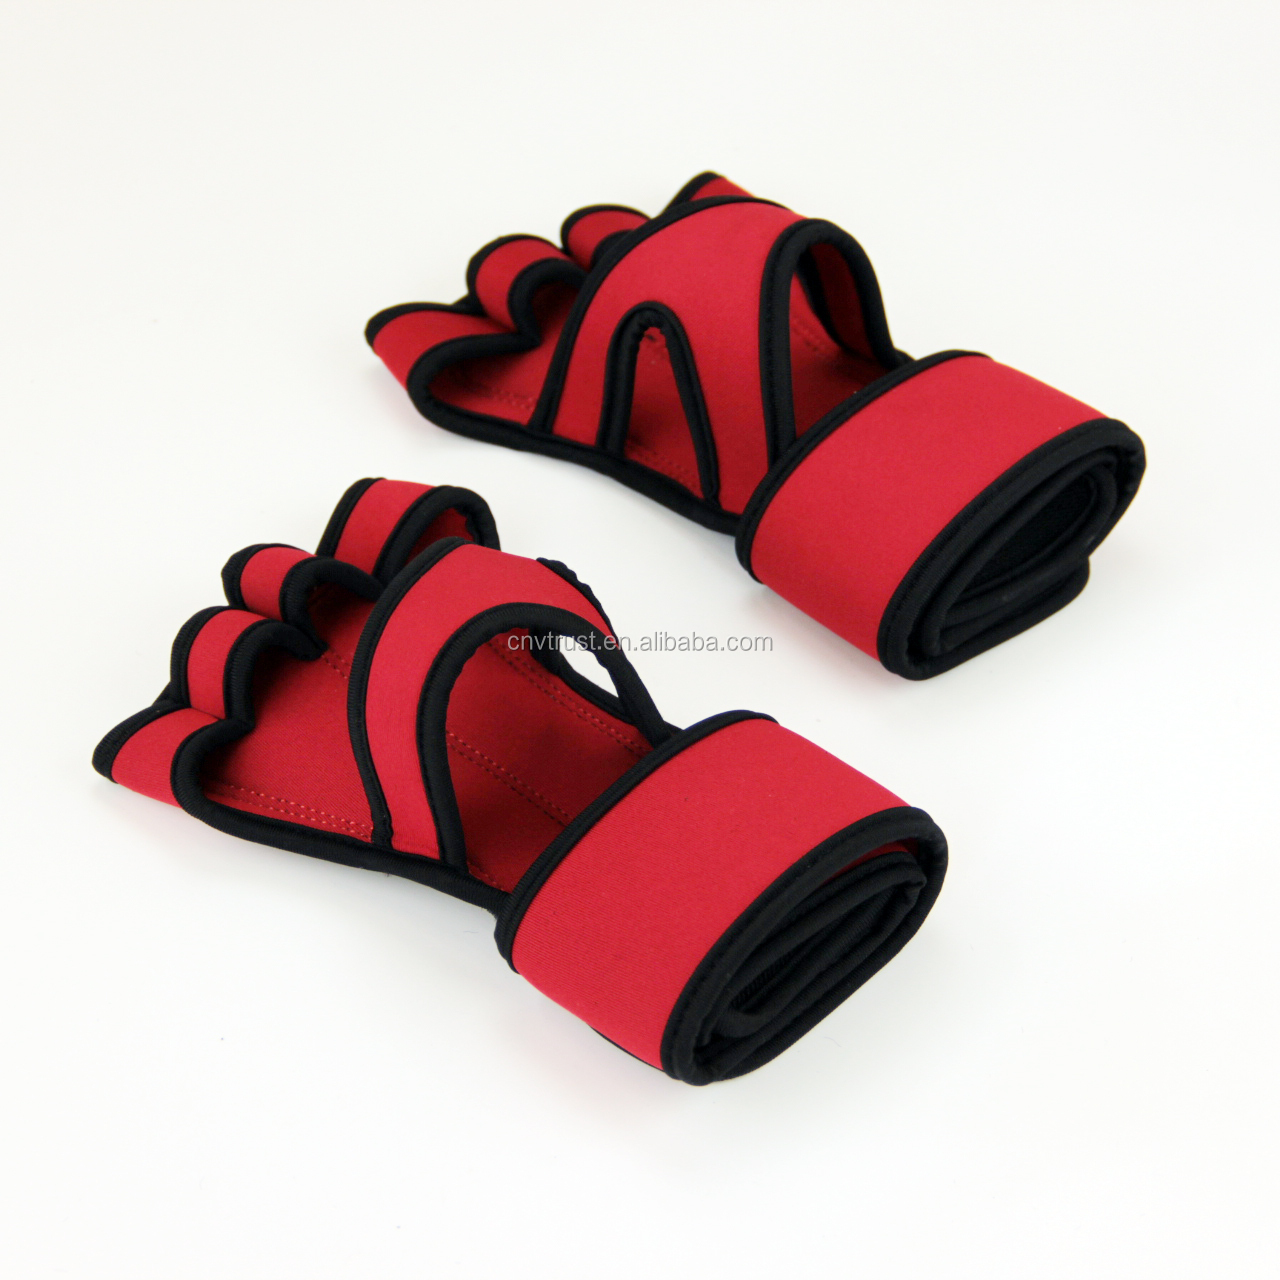 Leather Padding Weight lifting gloves/Wod Grips for Cross Training,Pull Ups,Lifting,Kettlebell